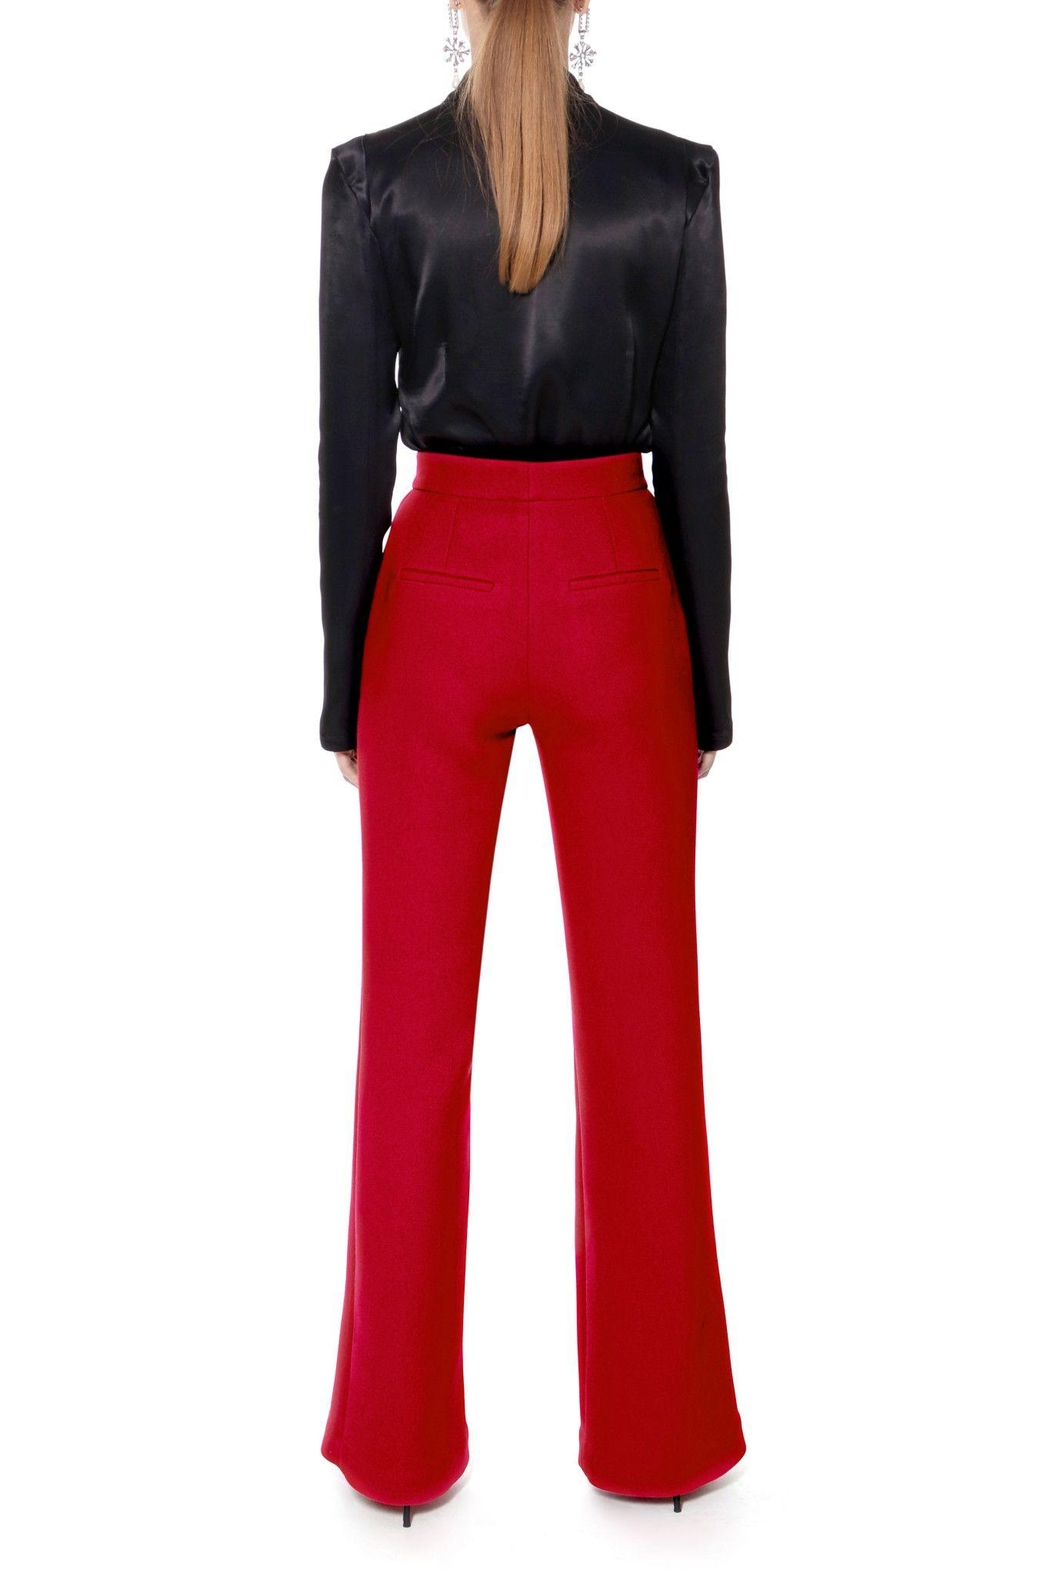 AGGI Pants Monica Lipstick Red - Height 175 - Back Cropped Image